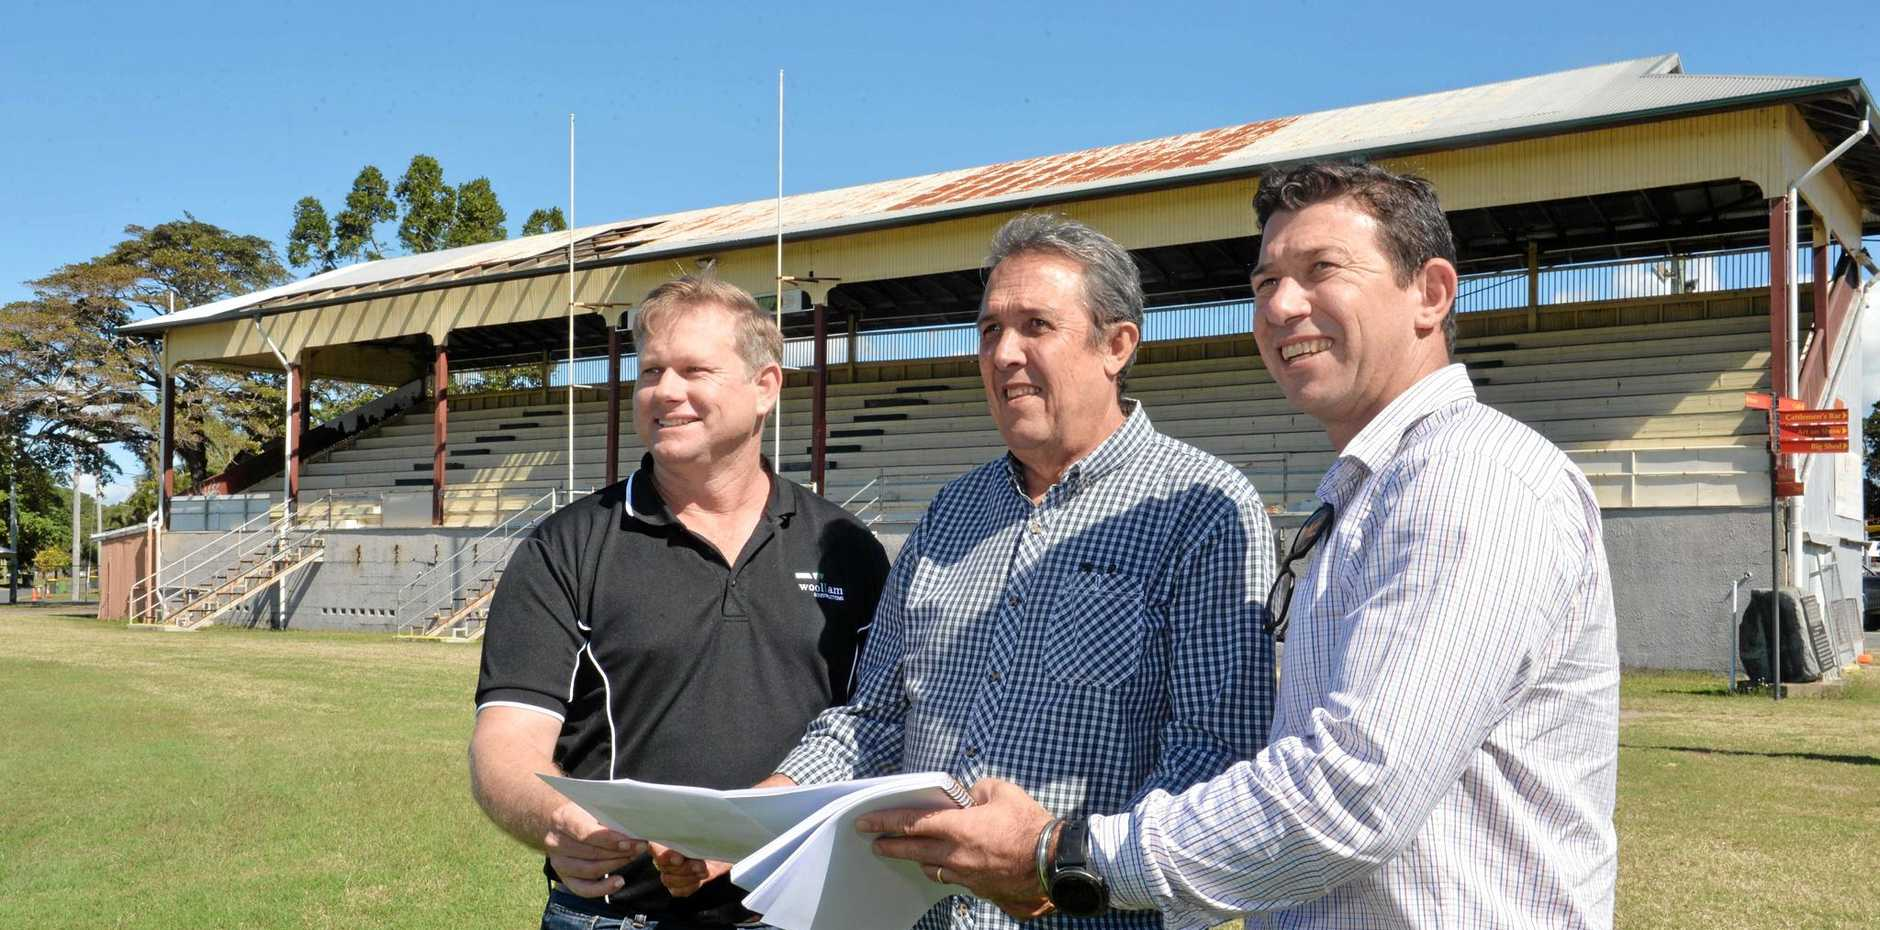 Woollam Constructions project manager Gary McLeod, Mackay Show Association manager Steve Gavioli and Woollam Constructions branch manager Peter Lando check plans for the upgrade at the Mackay showgrounds.